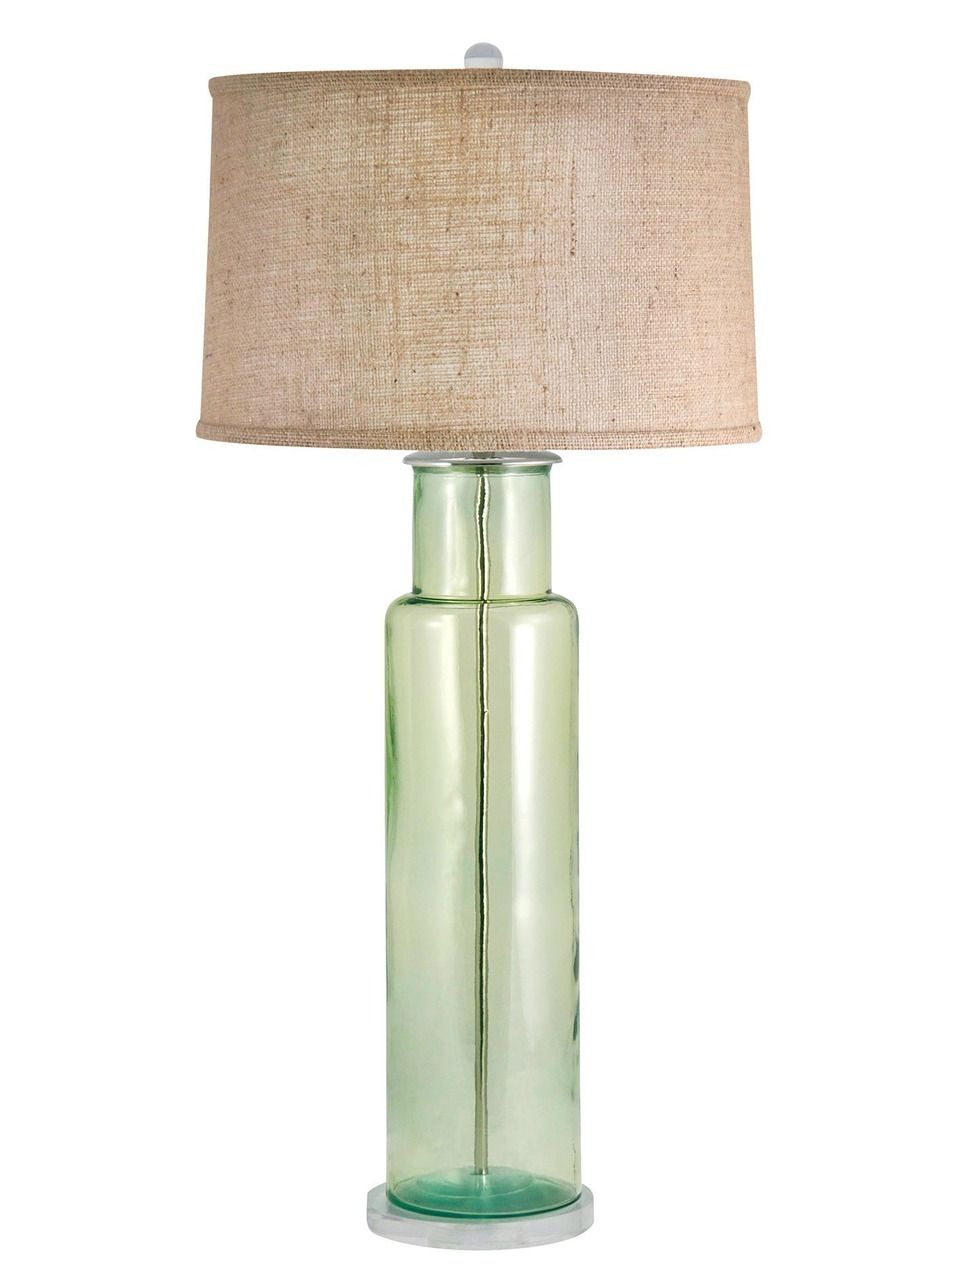 Glass Buoy Table Lamp In Light Green